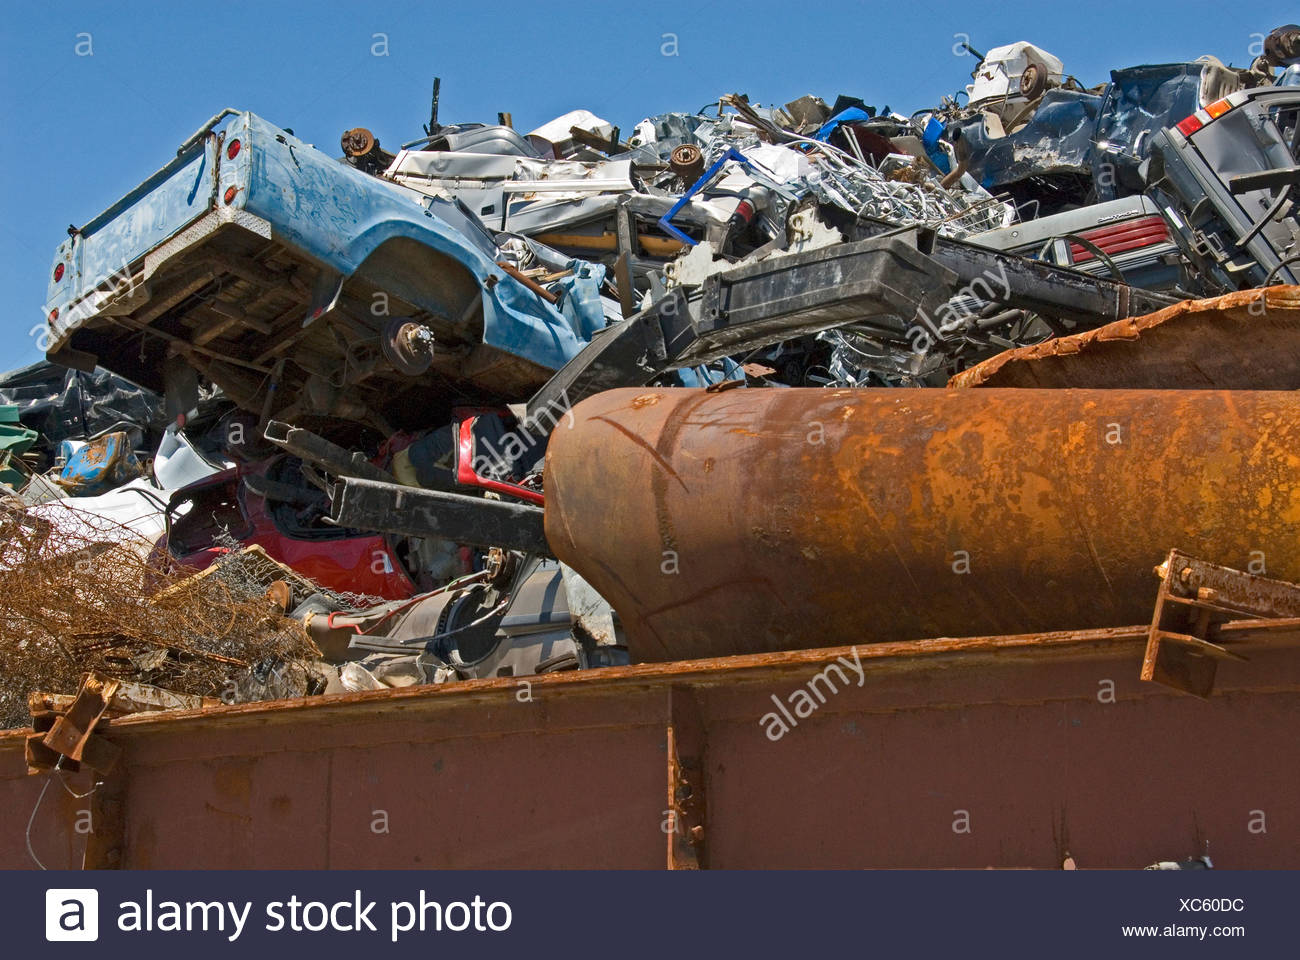 Looking up at a scrap metal dump with a wrecked car sticking